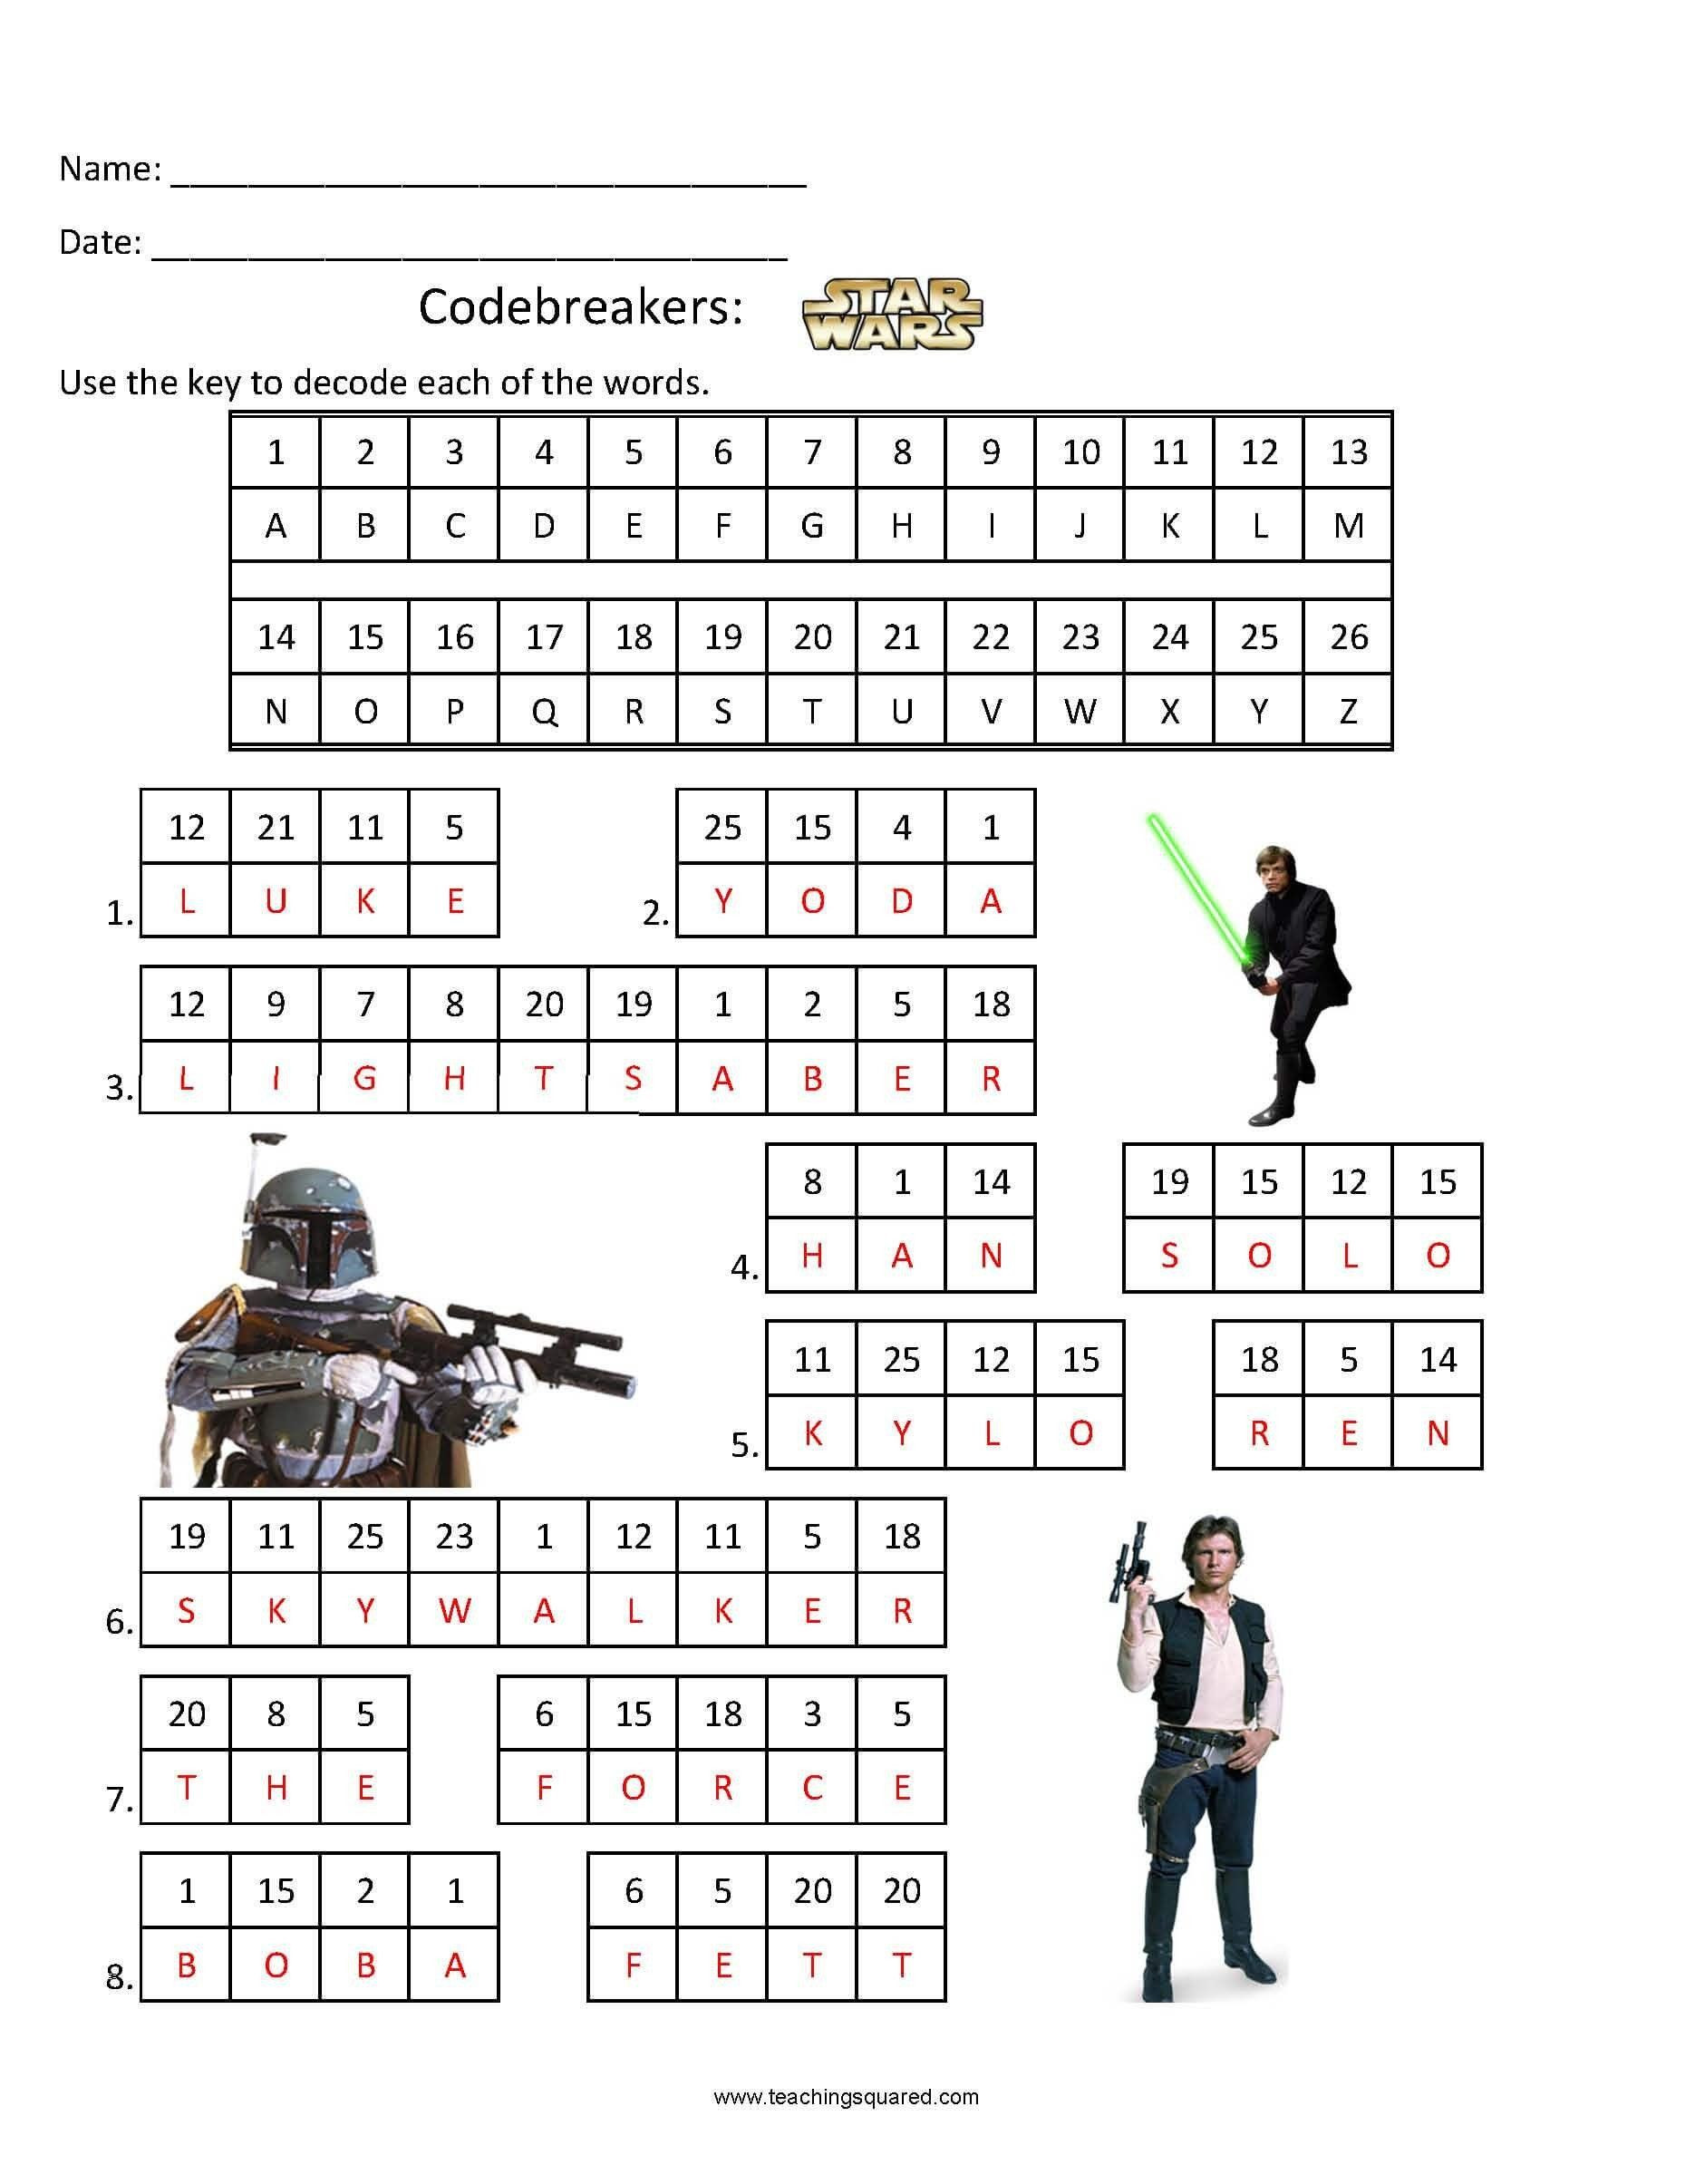 Star Wars Math Worksheets Star Wars Math Worksheets Codebreakers Star Wars 1 Teaching